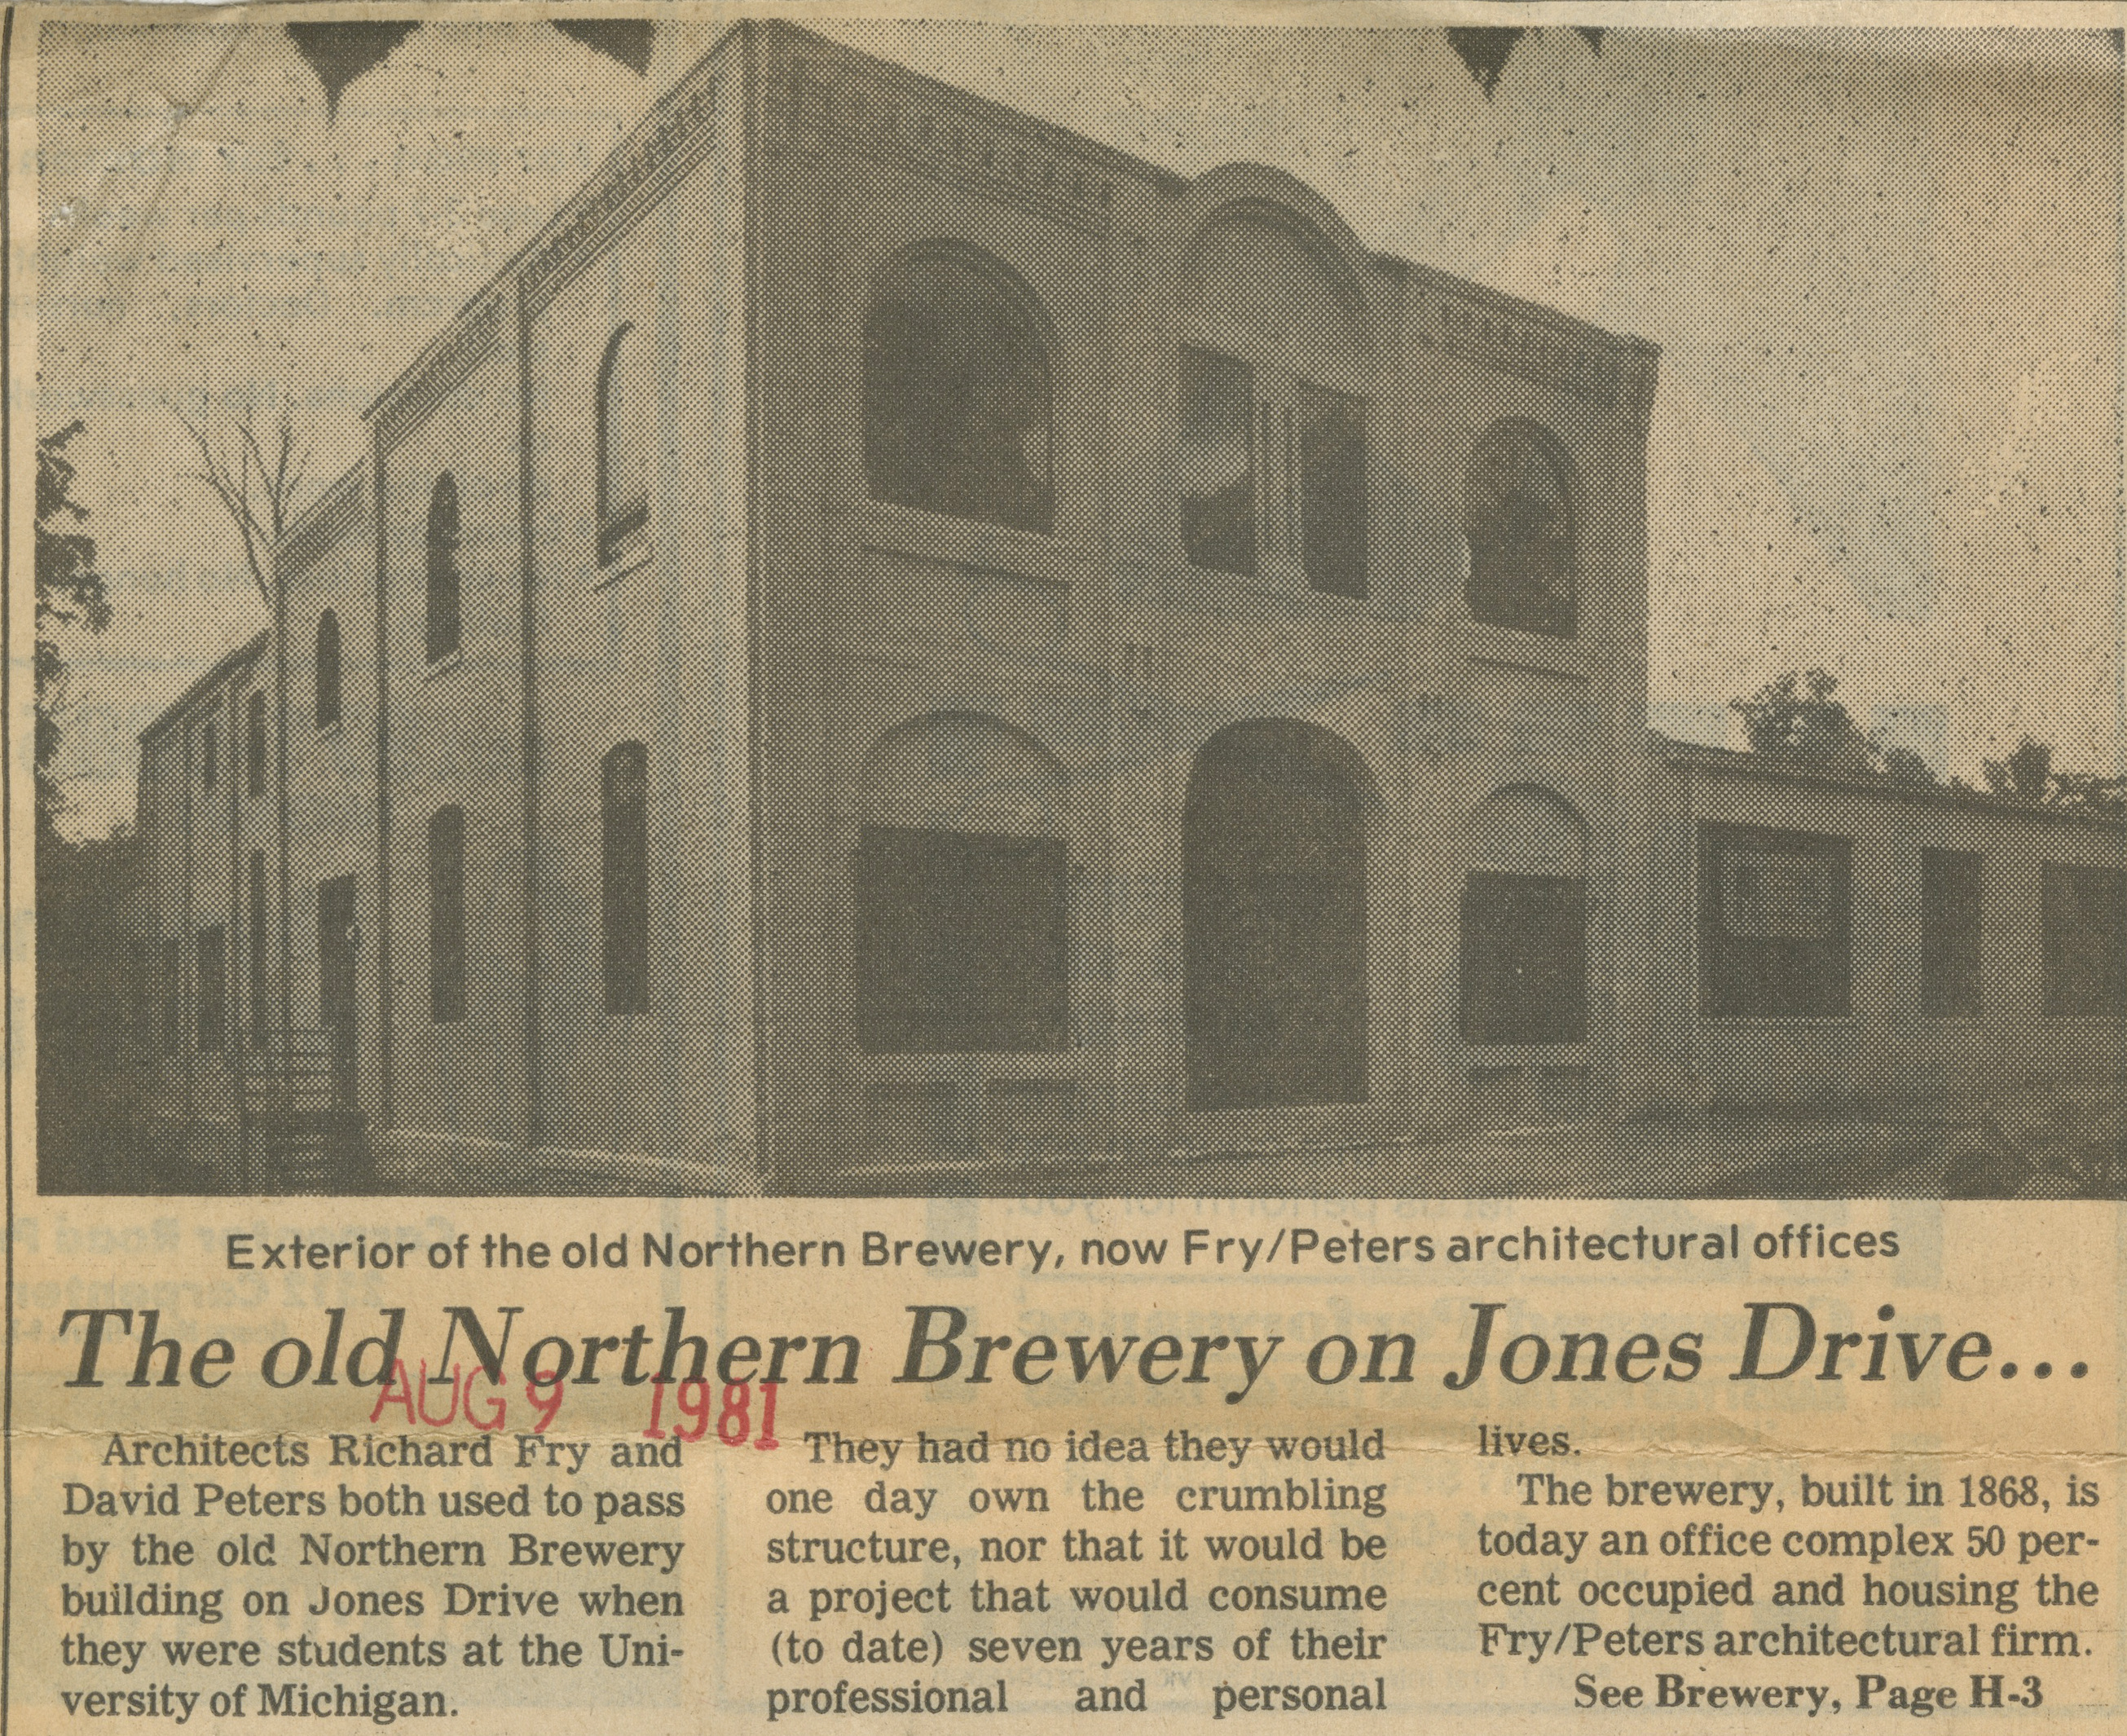 The Old Northern Brewery On Jones Drive image